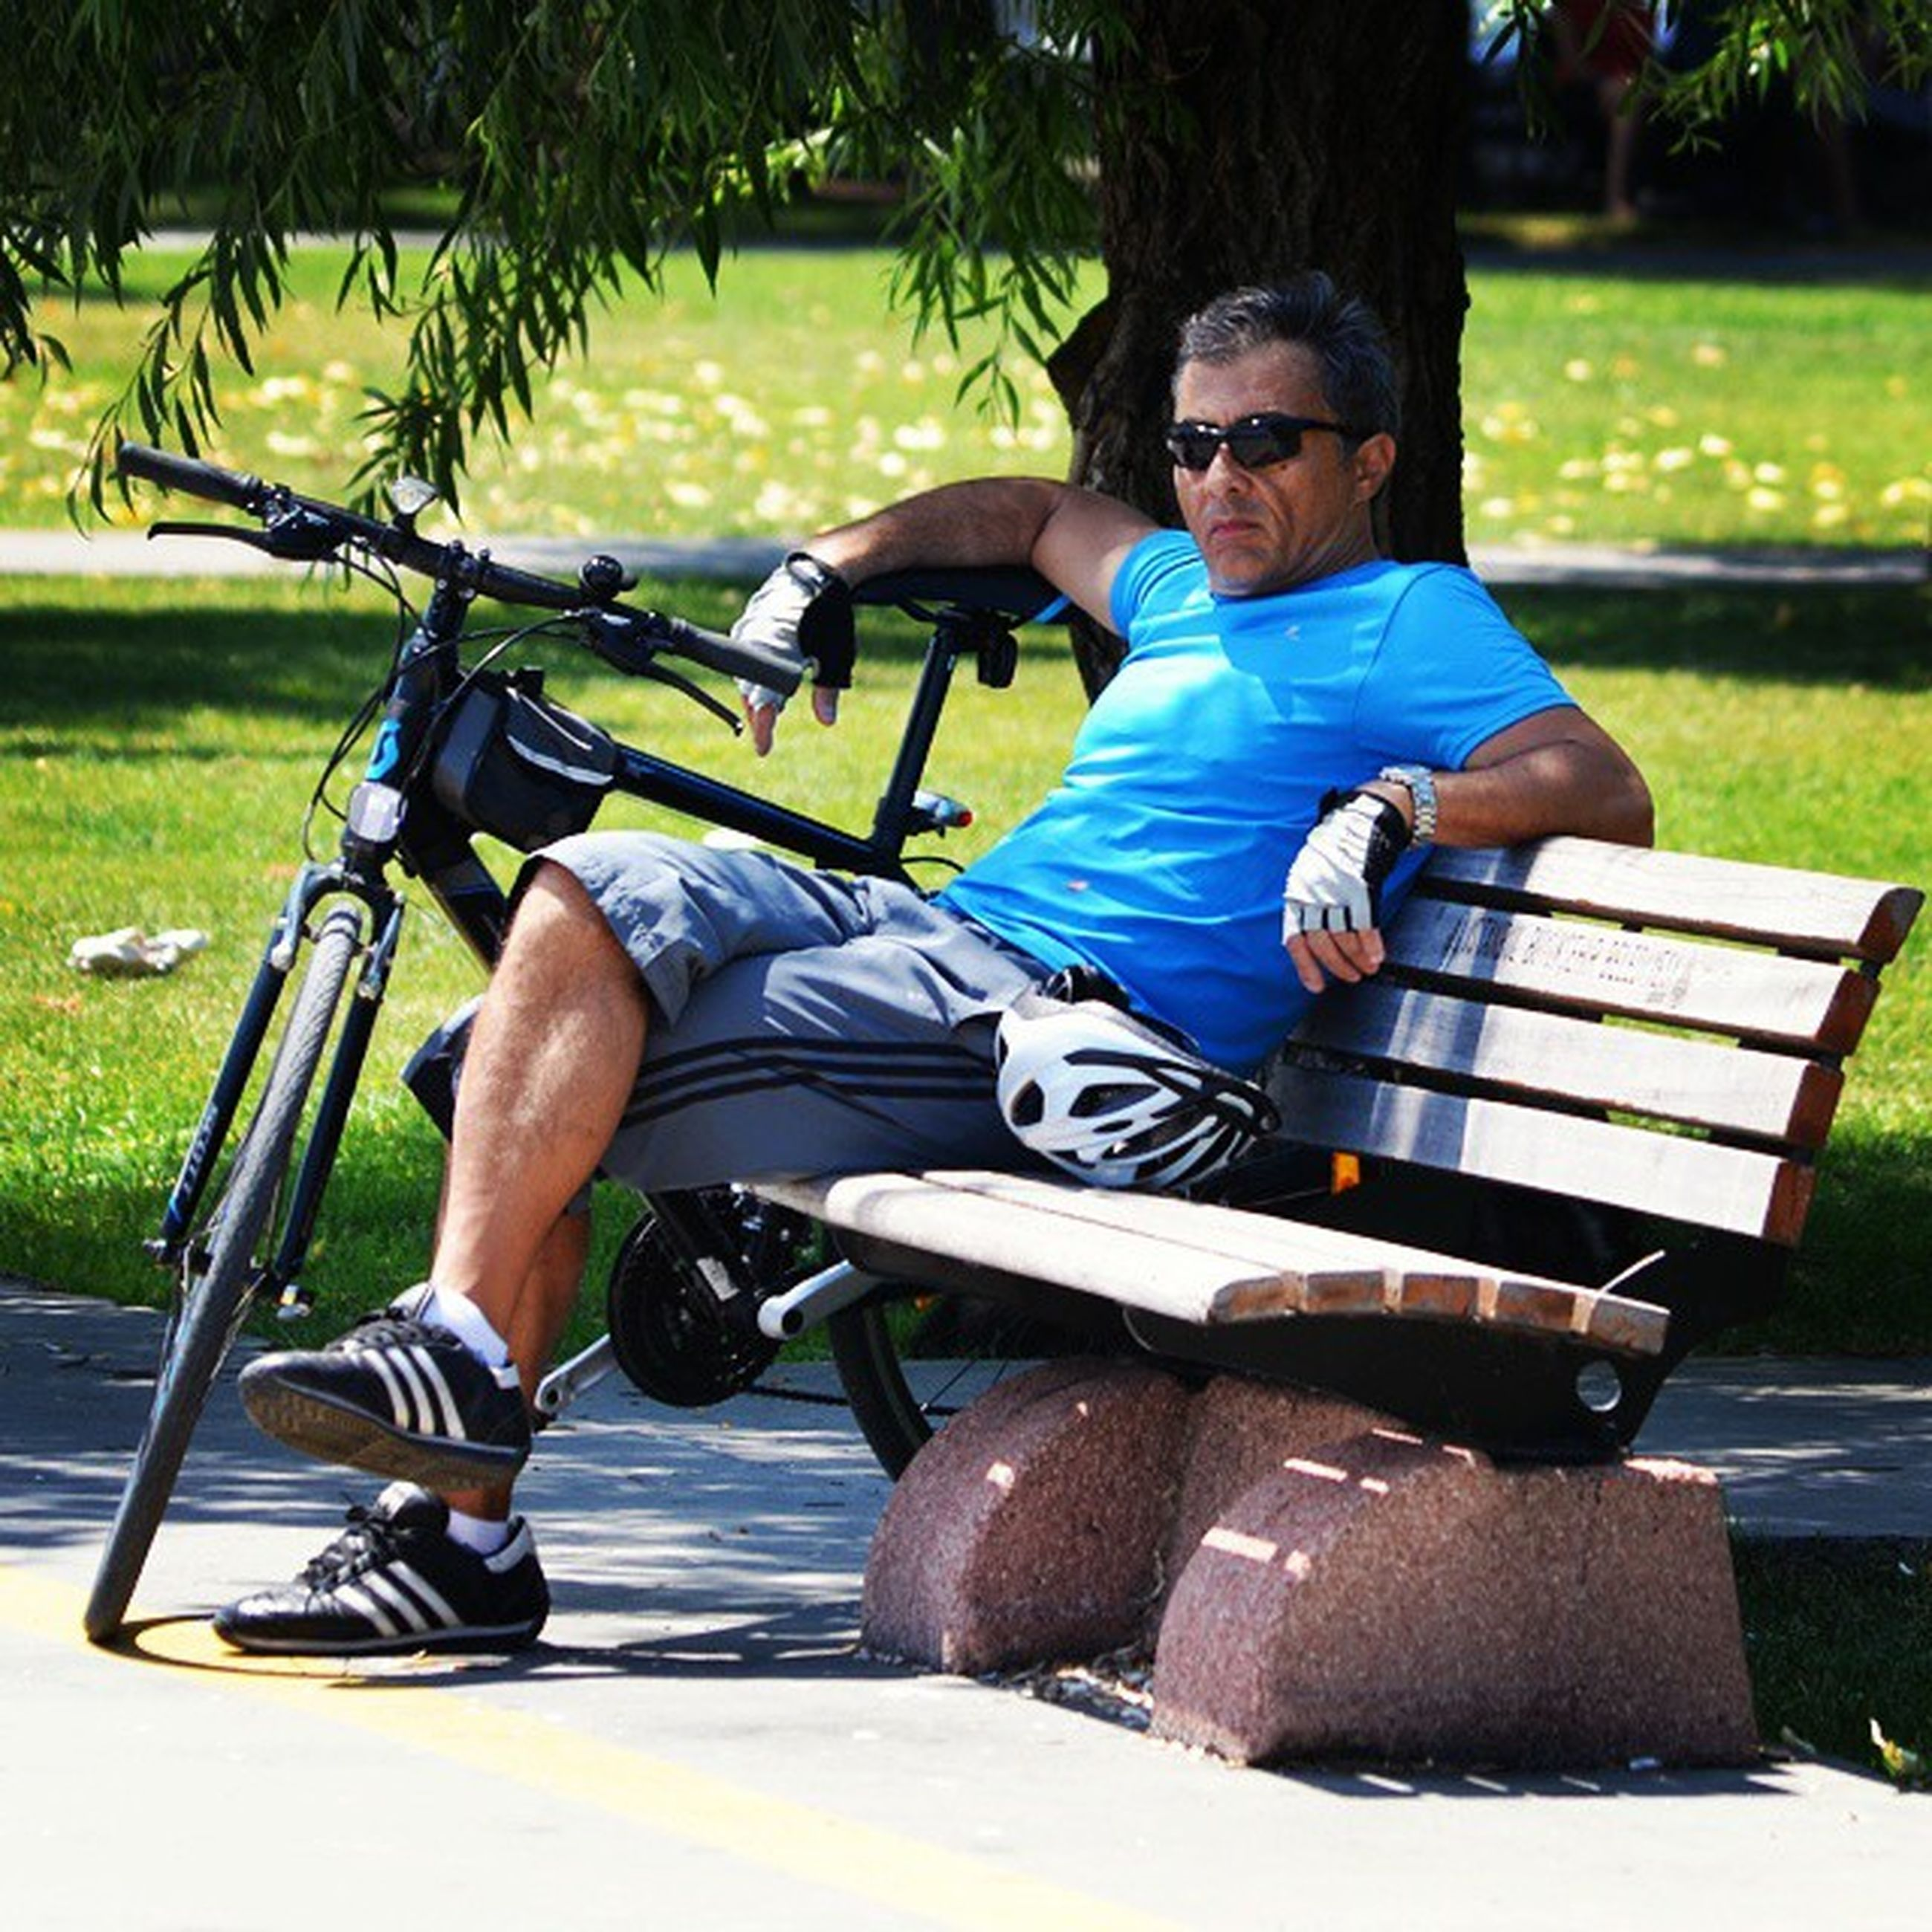 lifestyles, sitting, leisure activity, tree, relaxation, park - man made space, casual clothing, grass, full length, bench, chair, person, park, sunlight, young adult, day, childhood, outdoors